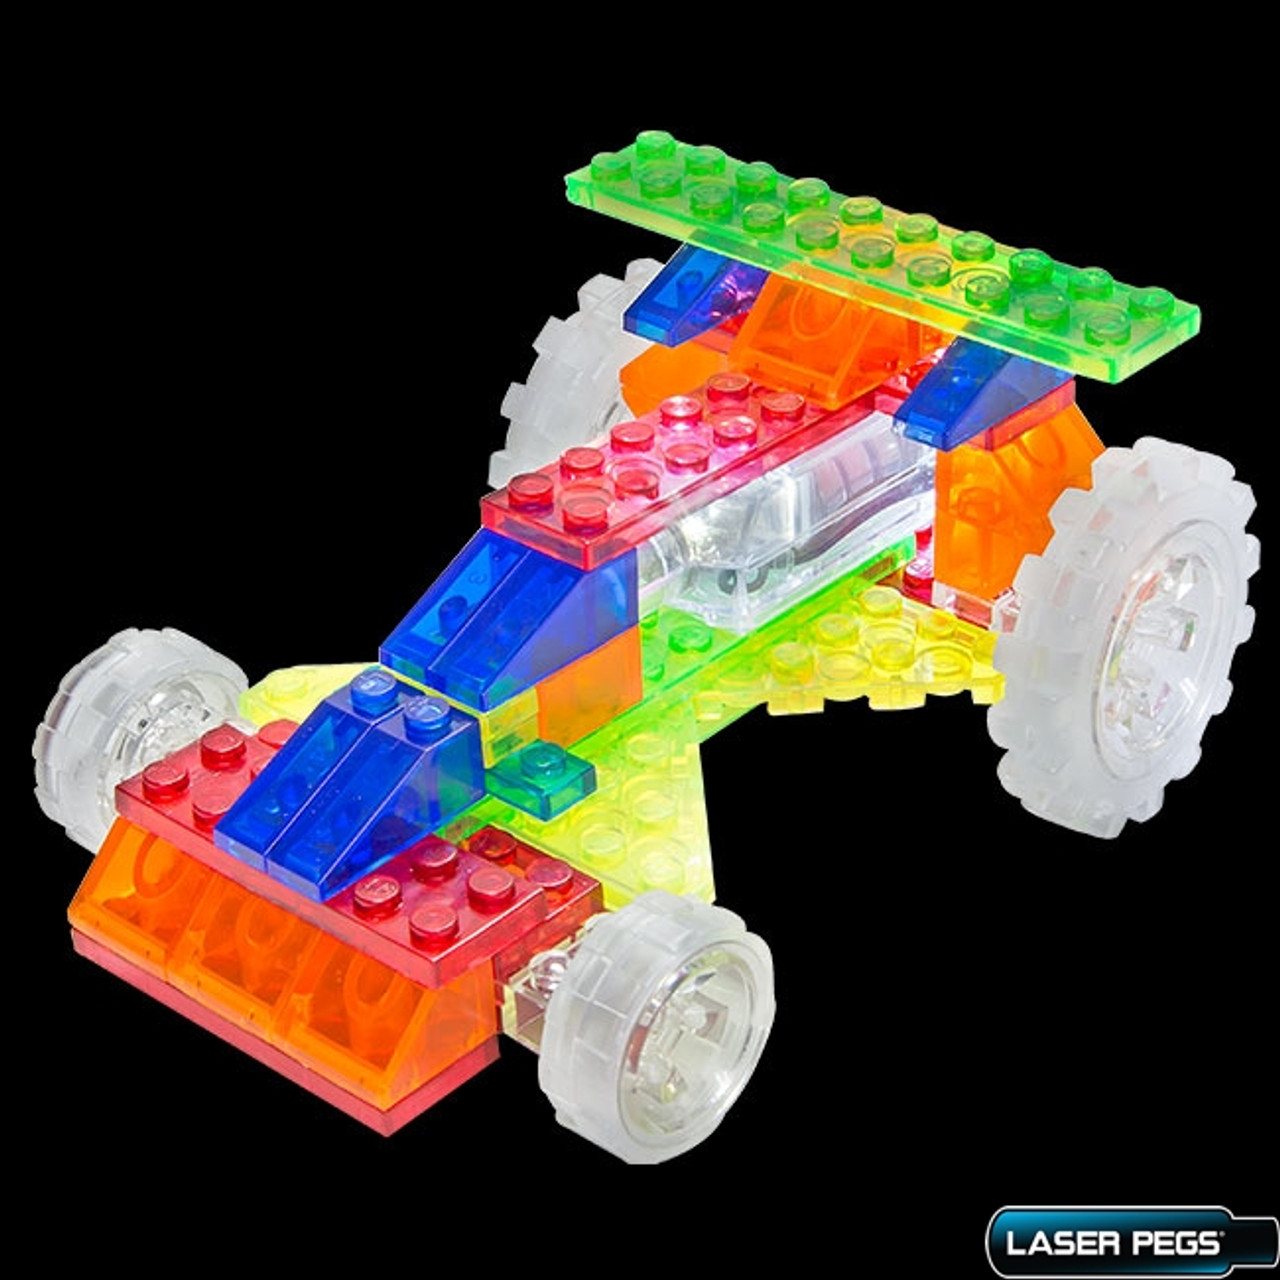 Top Fuel Dragster Laser Pegs 6 in 1 Light Up building block Works with any brick